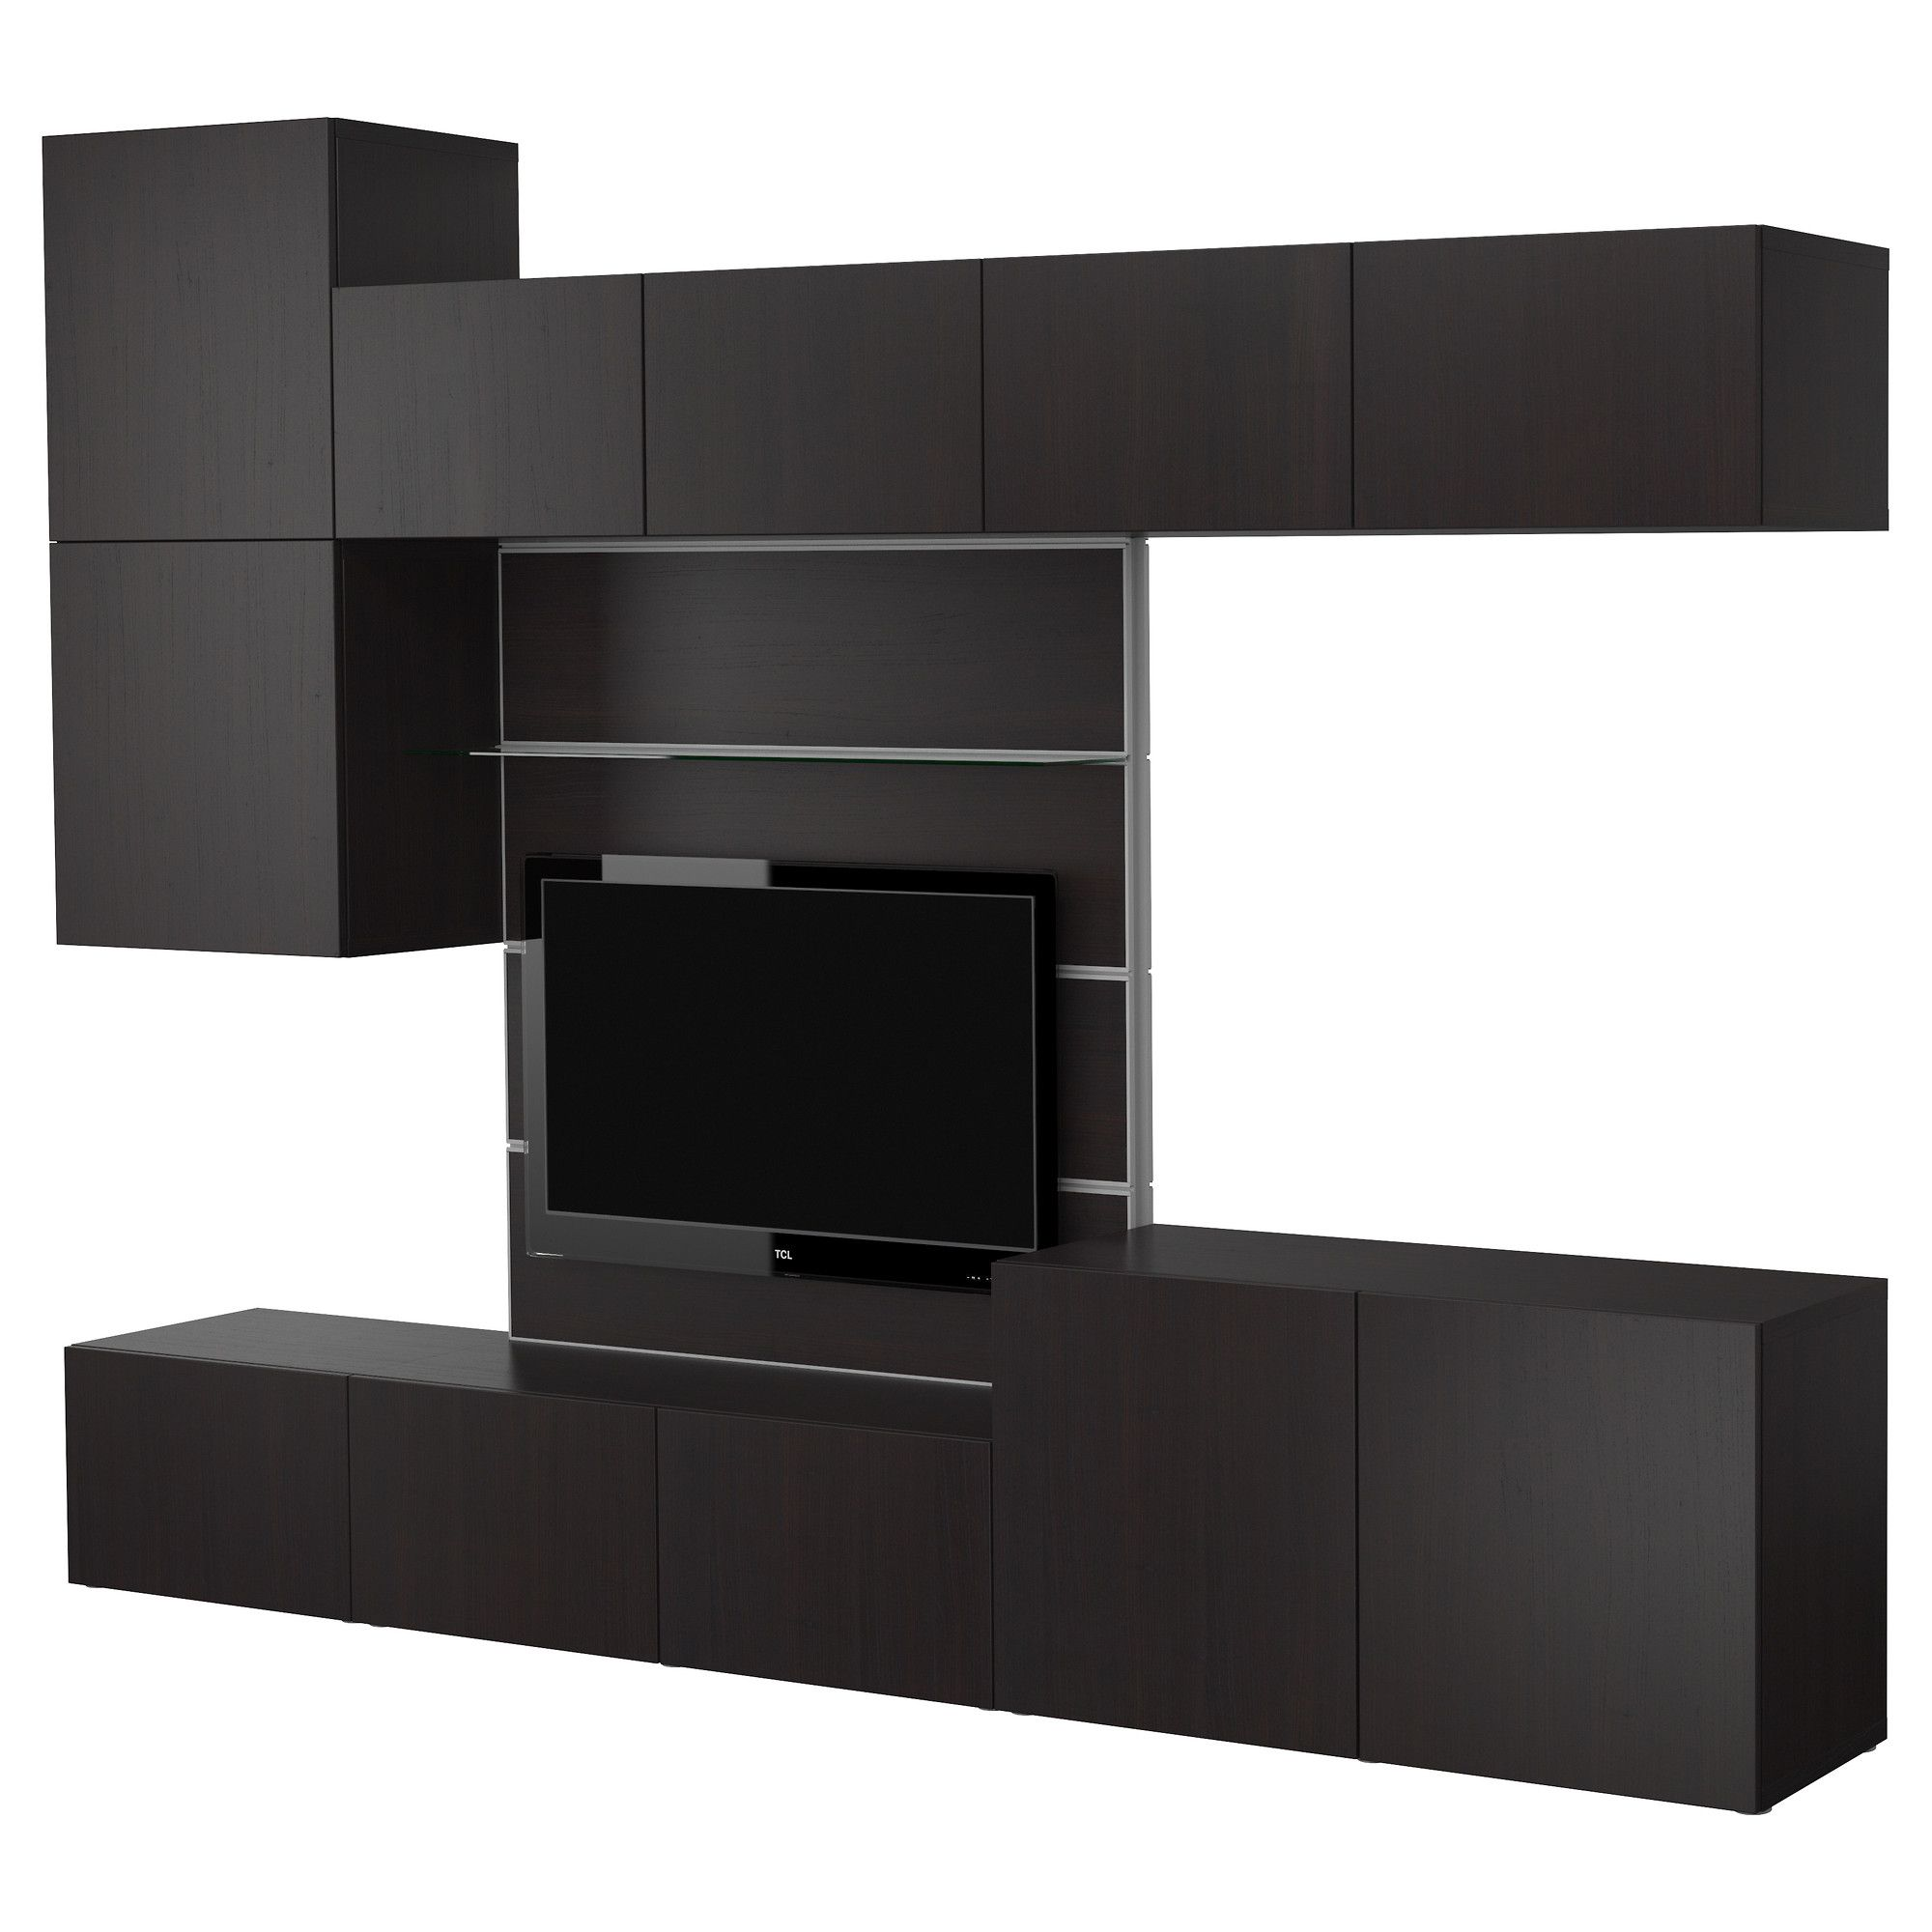 3 Tetris Furniture 600 Best Tv Panel With Media Storage Black  # Meuble Tv Ikea Long